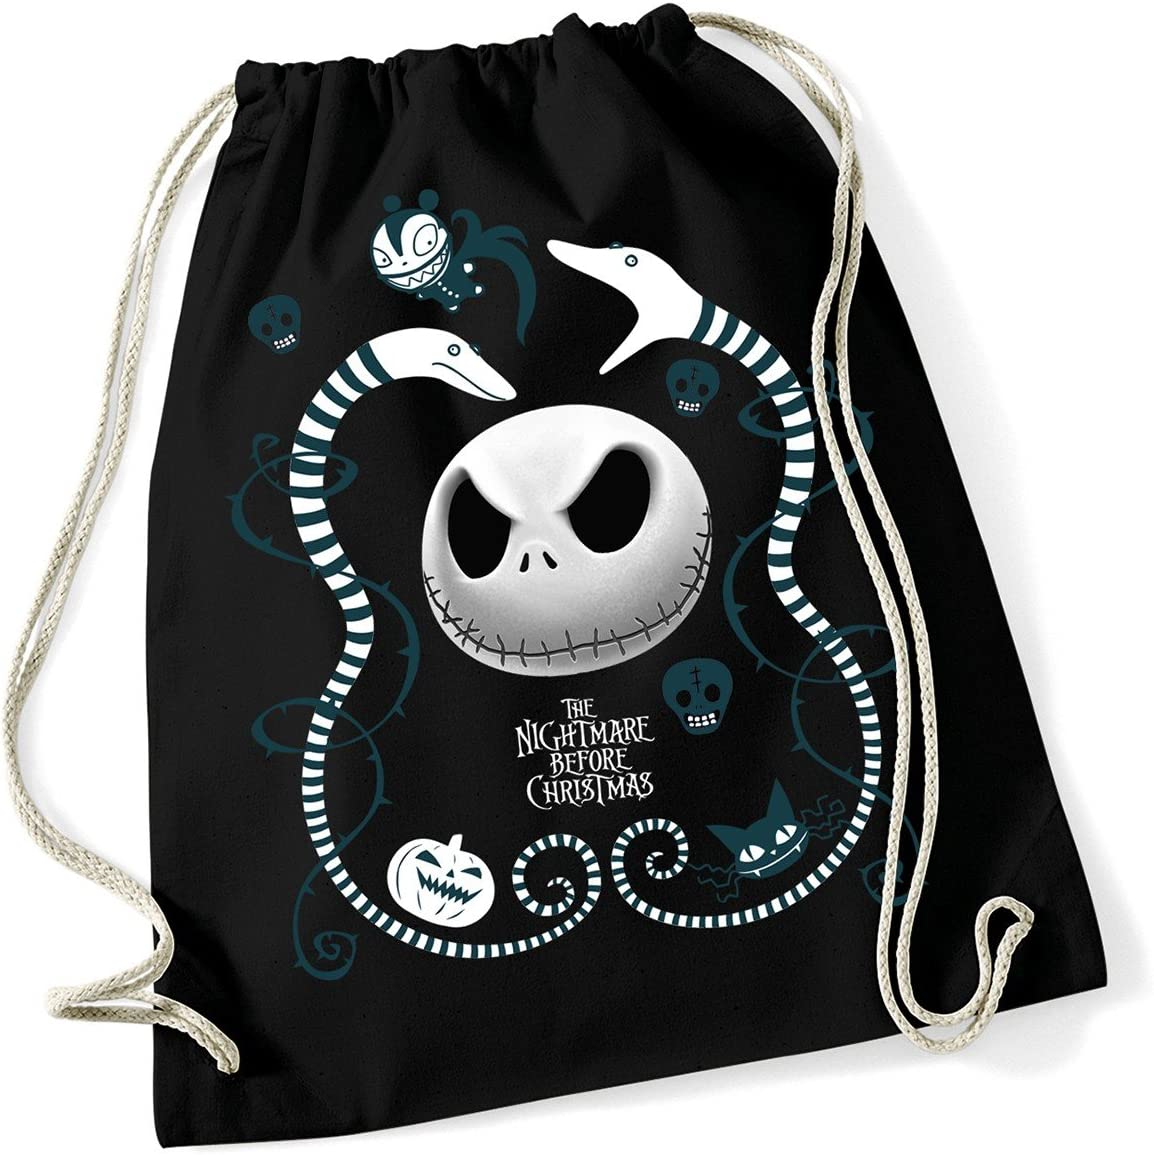 The Nightmare Before Christmas Snake Charmer Turn Bolsa Negro, Color Negro, tamaño Talla única: Amazon.es: Deportes y aire libre